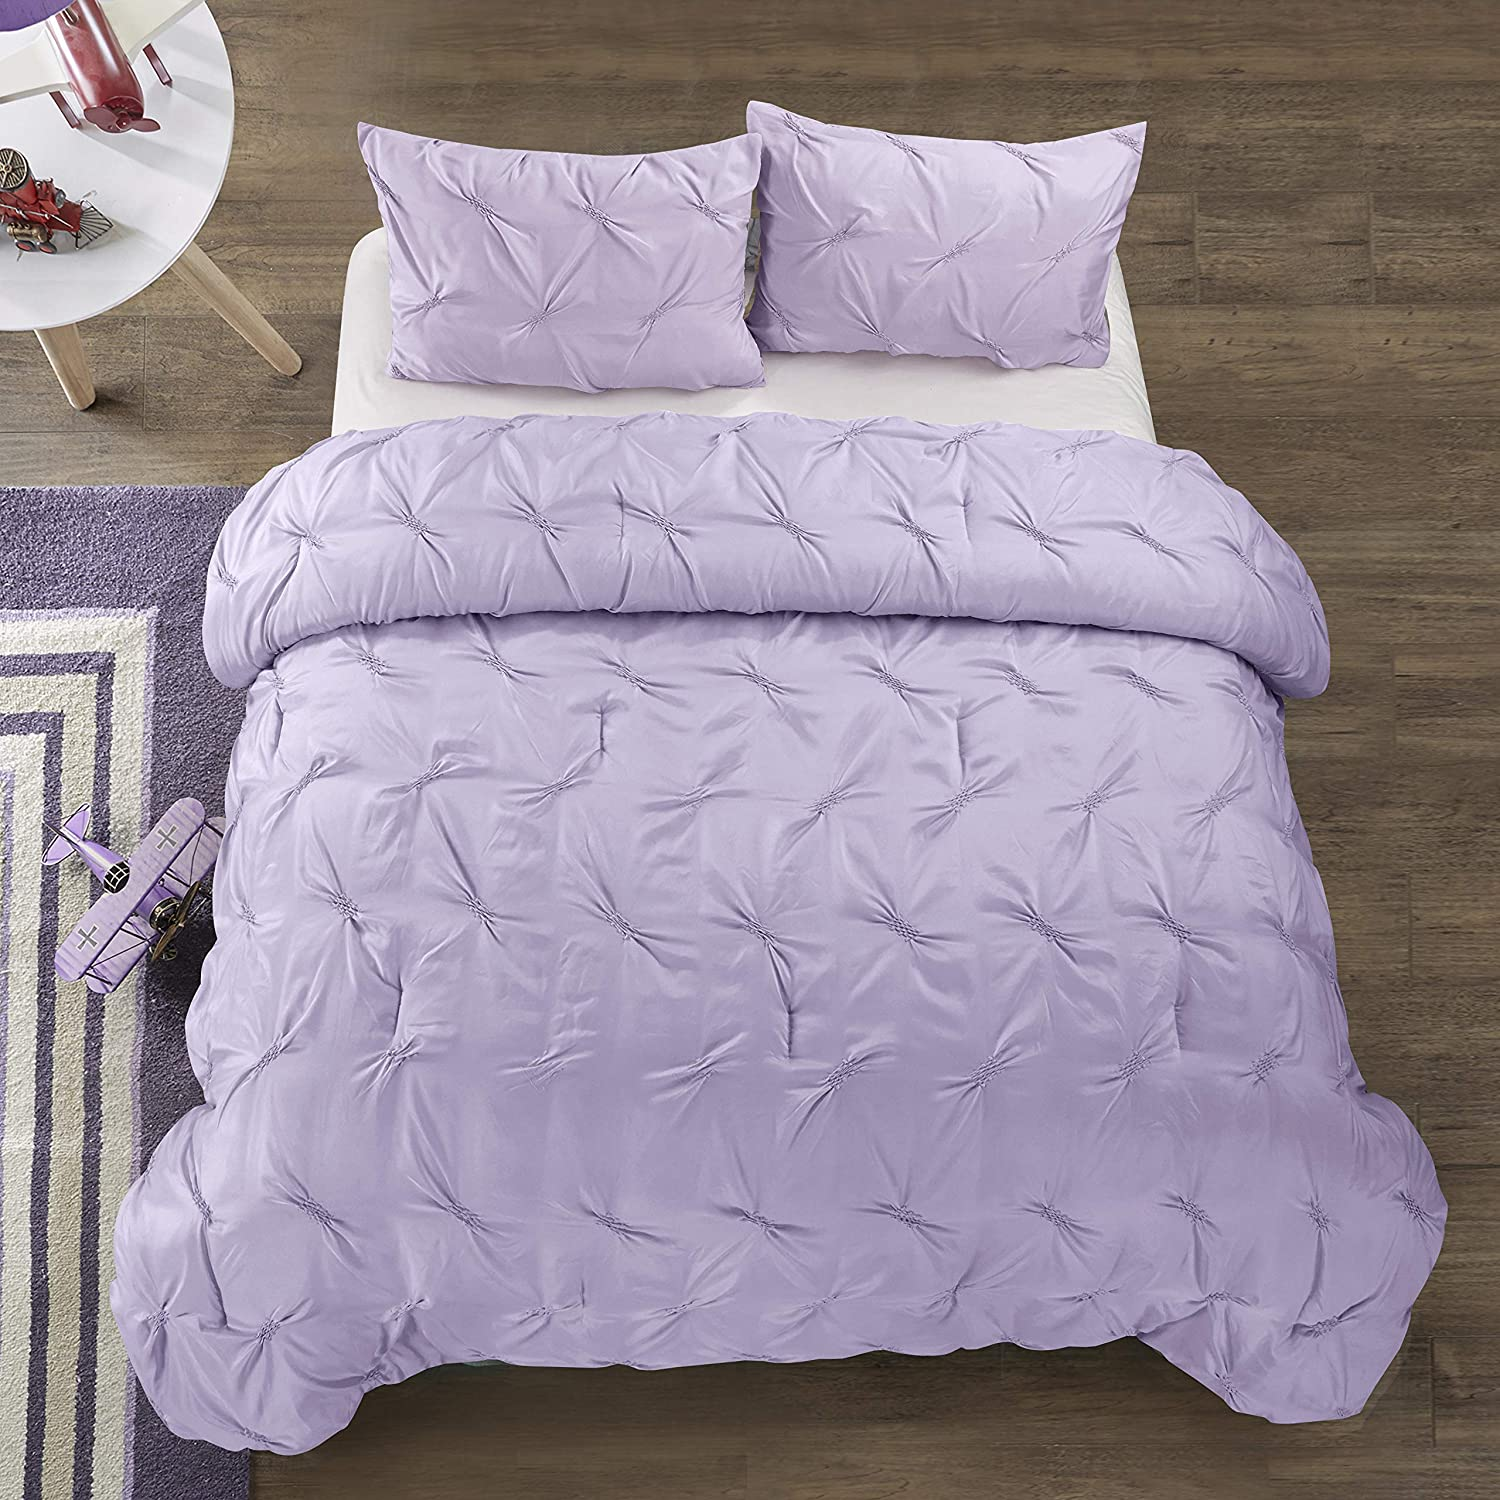 Purple All Season Breathable 3 Piece Kids and Teen Solid Pintuck Comforter Set Alternative Microfiber Full Sierra for Boys and Girls Hypoallergenic Heritage Club Ultra Soft